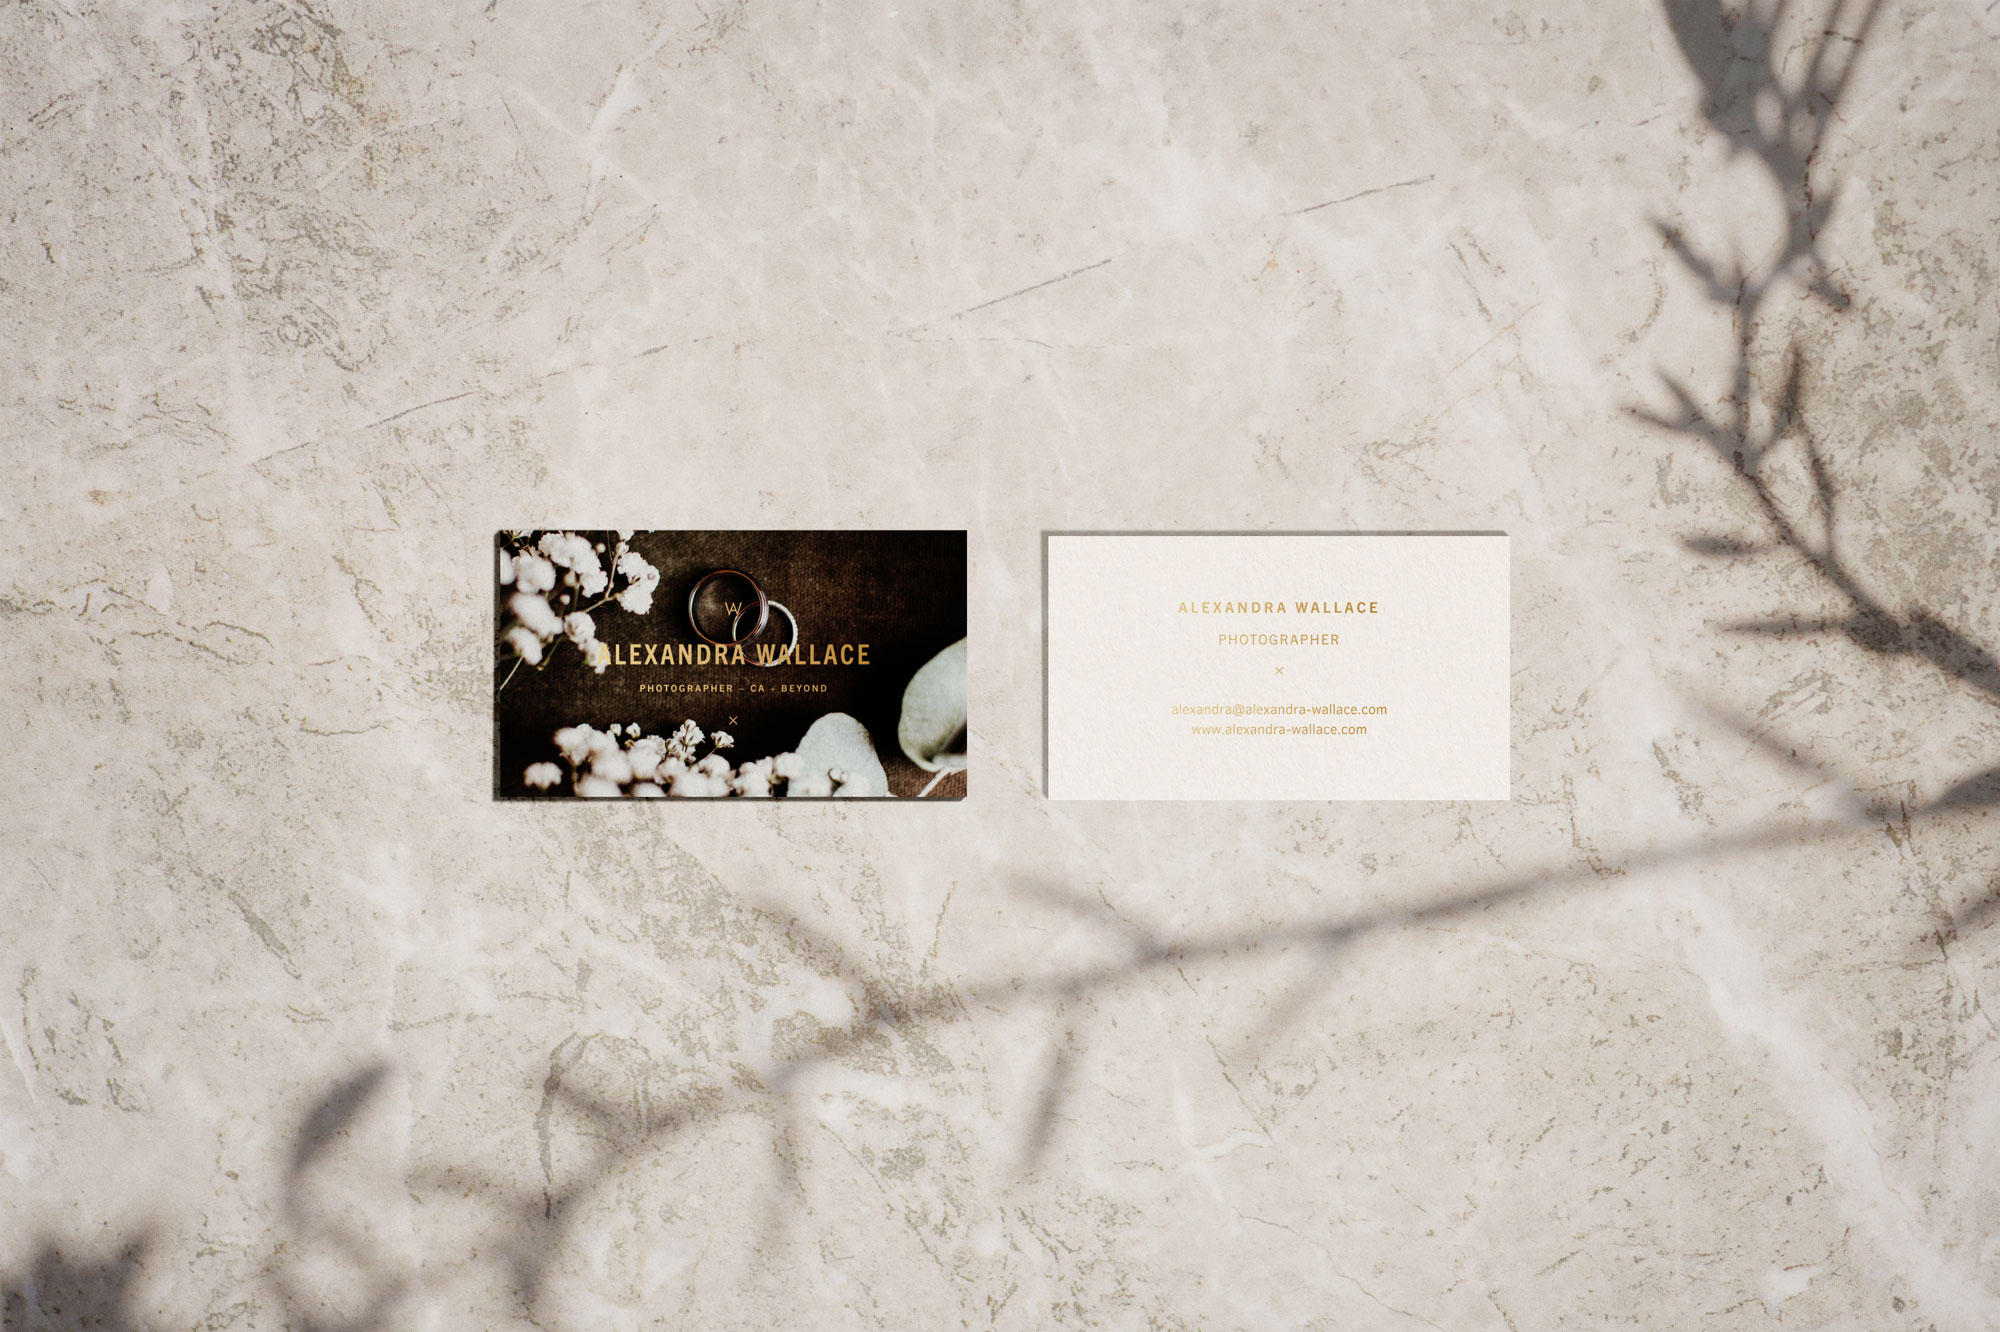 Gold Foil Business Card Design for San Luis Obispo Fashion and Wedding Photographer Alexandra Wallace